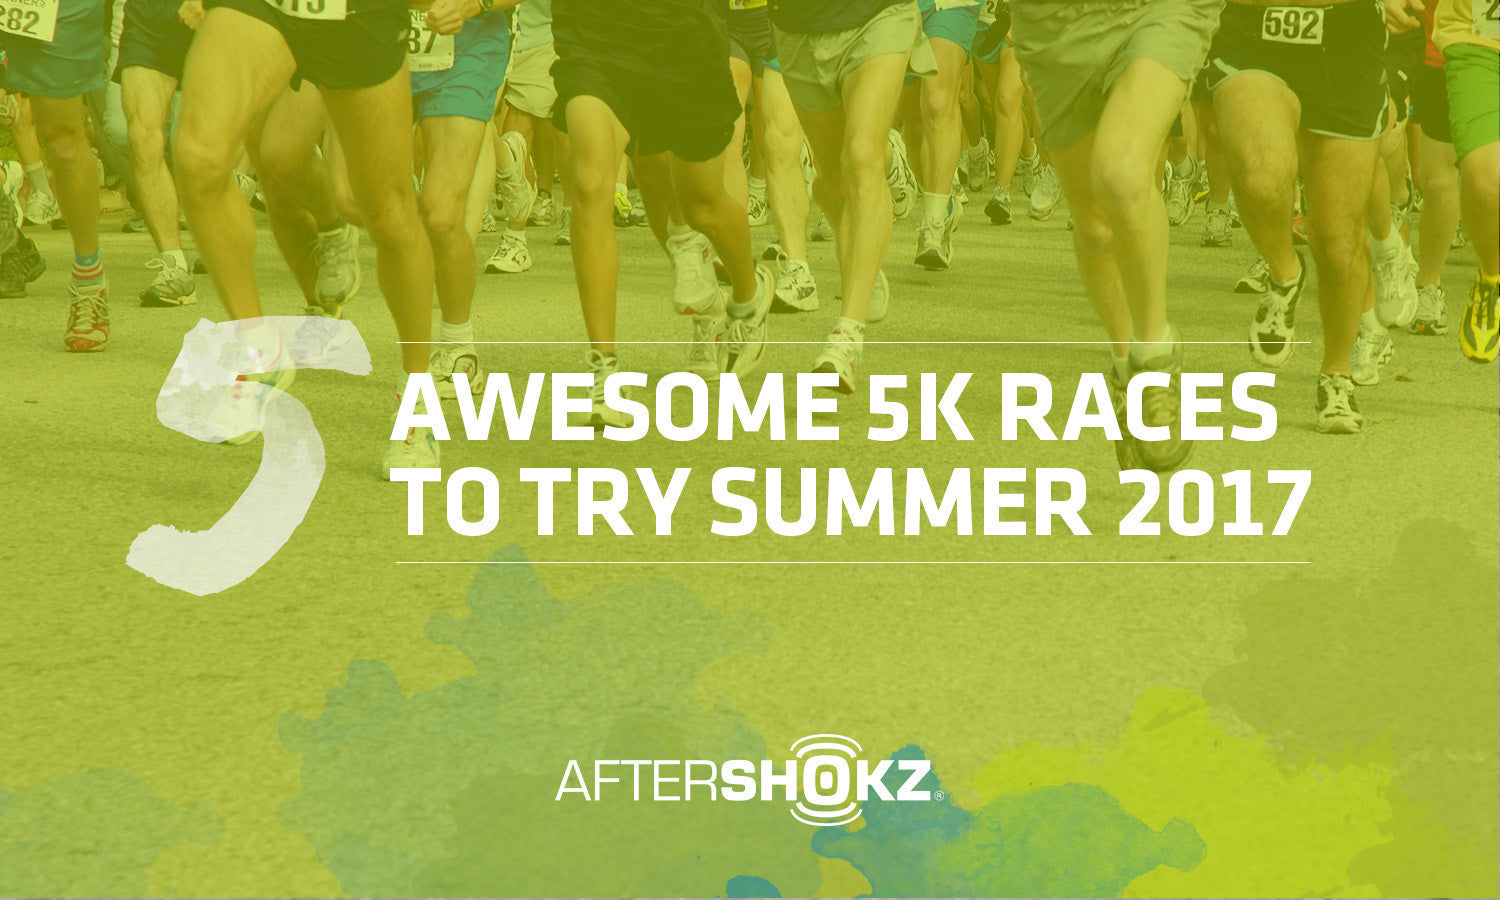 5 Awesome 5K Races To Try Summer 2017